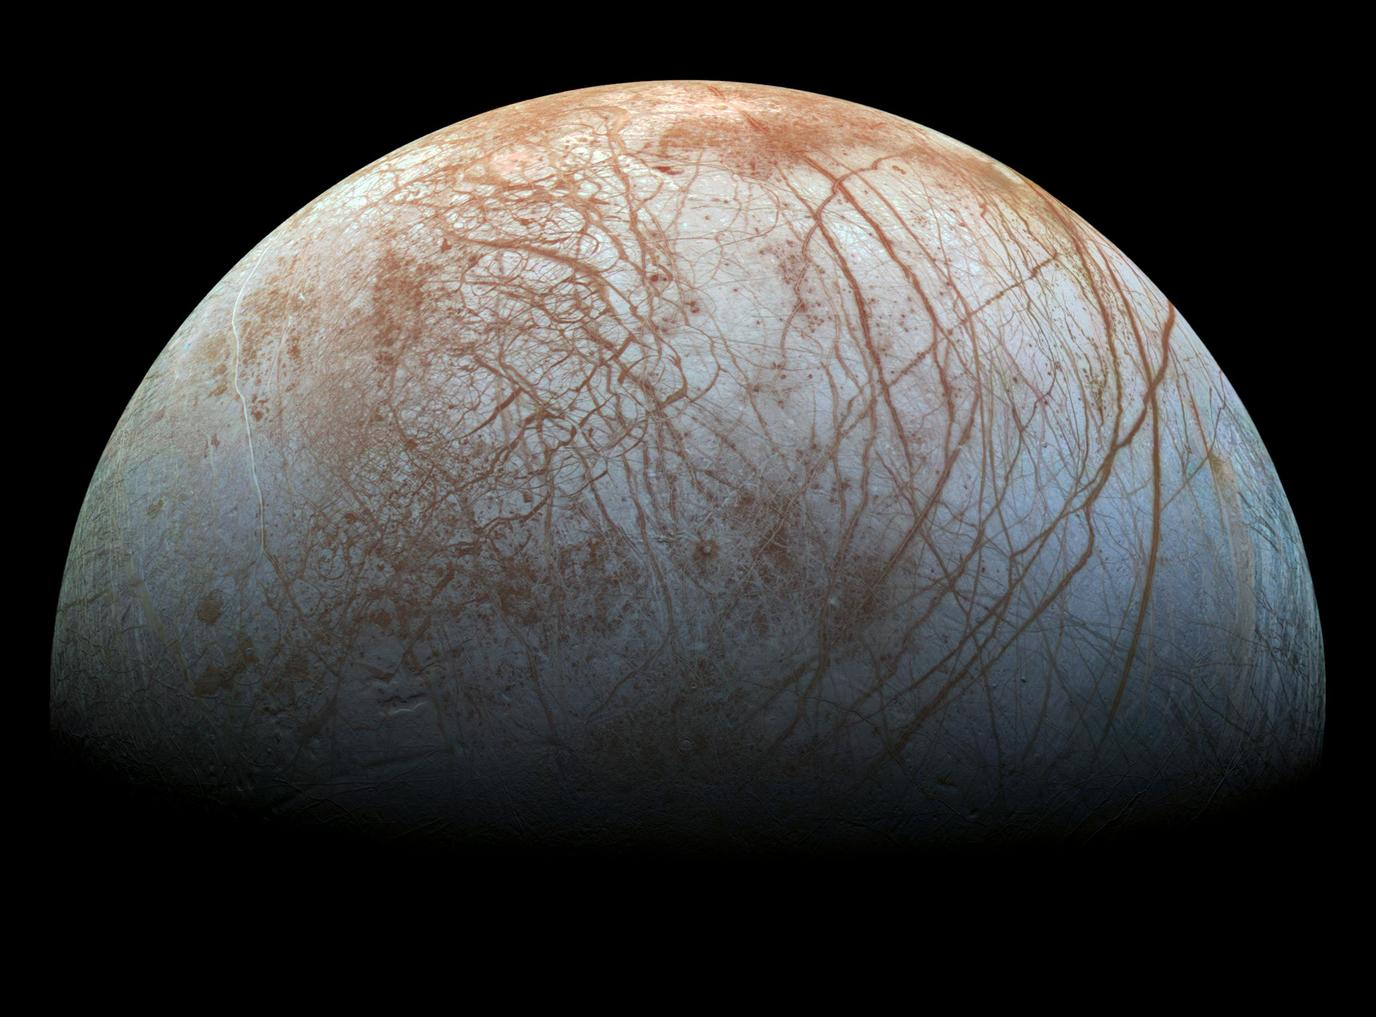 Europa, a 3130 km diameter moon of Jupiter. There is almost certainly a global ocean of salty water between the surface ice and the rocky interior.  - Image Credit:  NASA/JPL-Caltech/SETI Institute